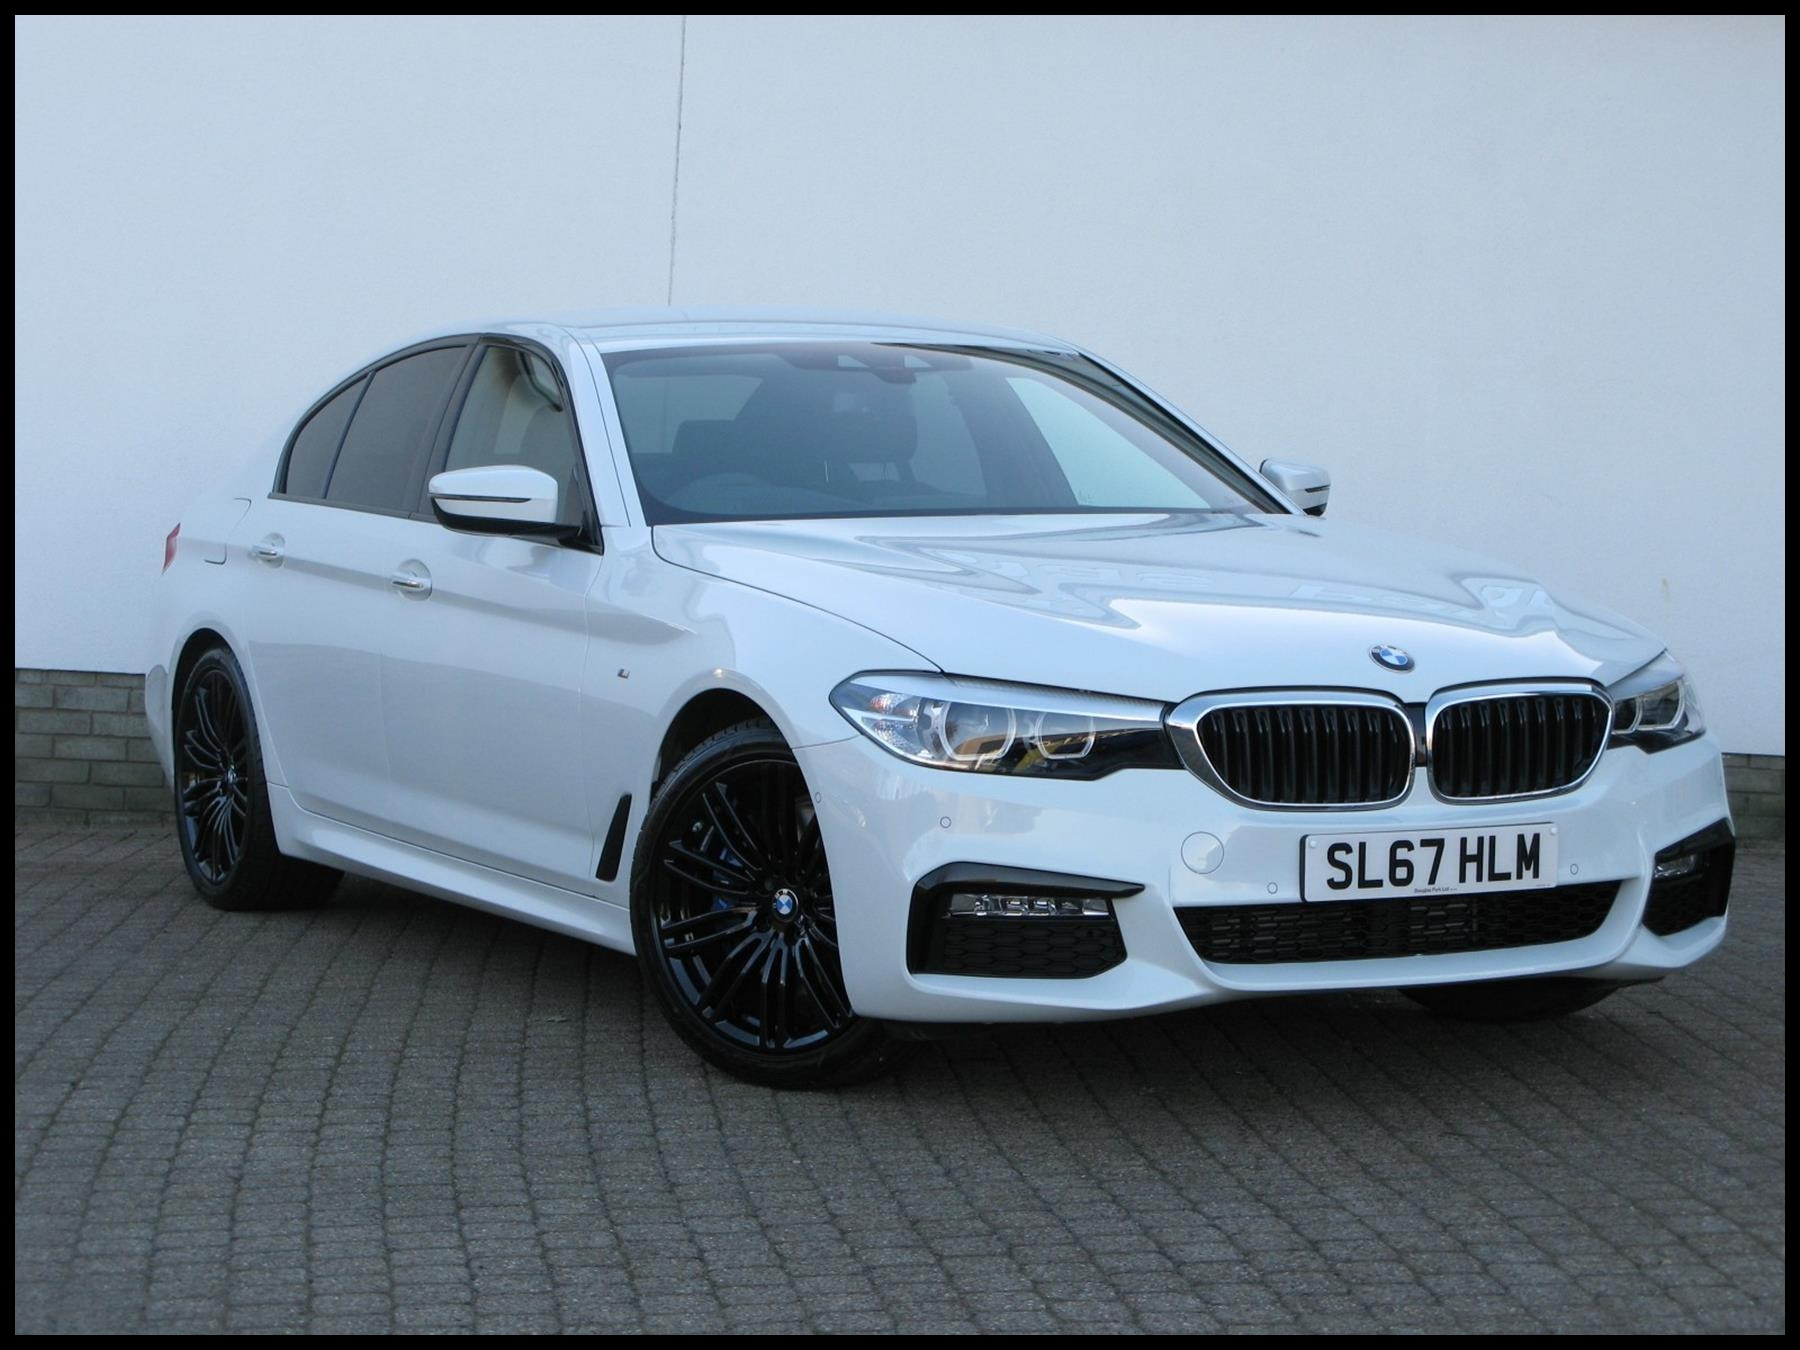 3 Series Bmw Price Beautiful Used 2017 Bmw 5 Series G30 530d Xdrive M Sport Saloon